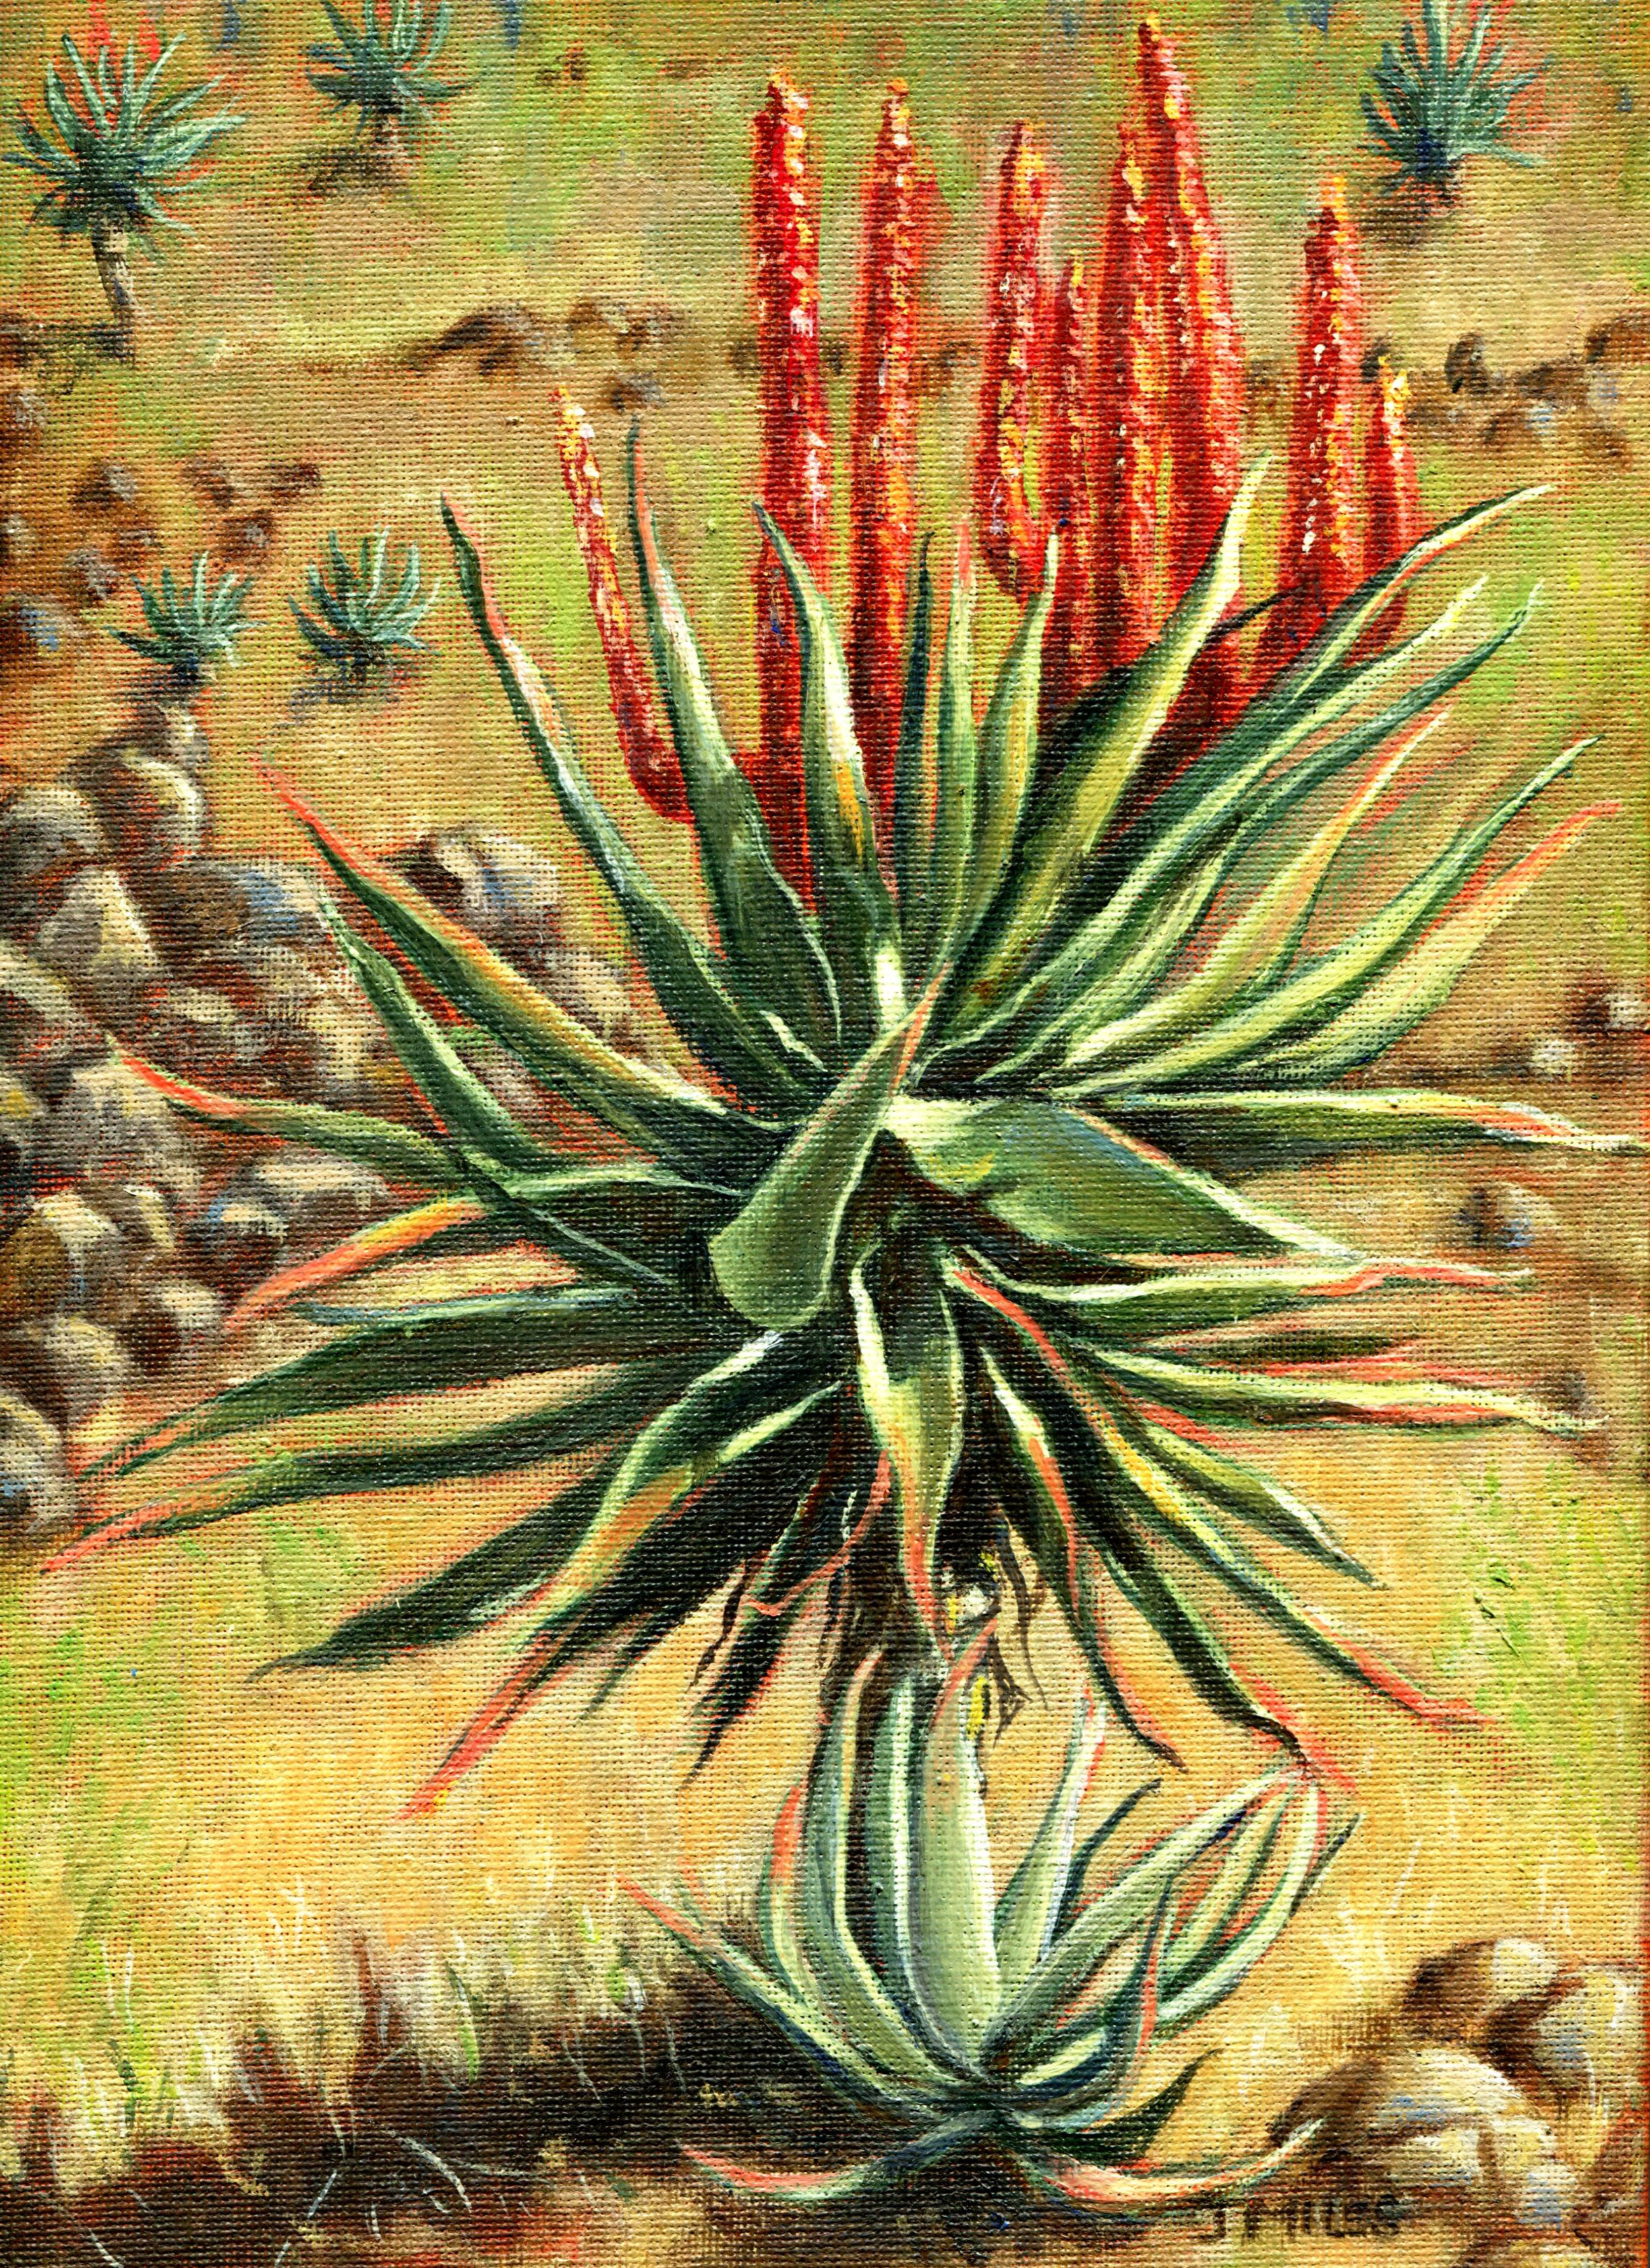 60B CREIGHTON VALLEY ALOES 2, OIL ON CANVAS